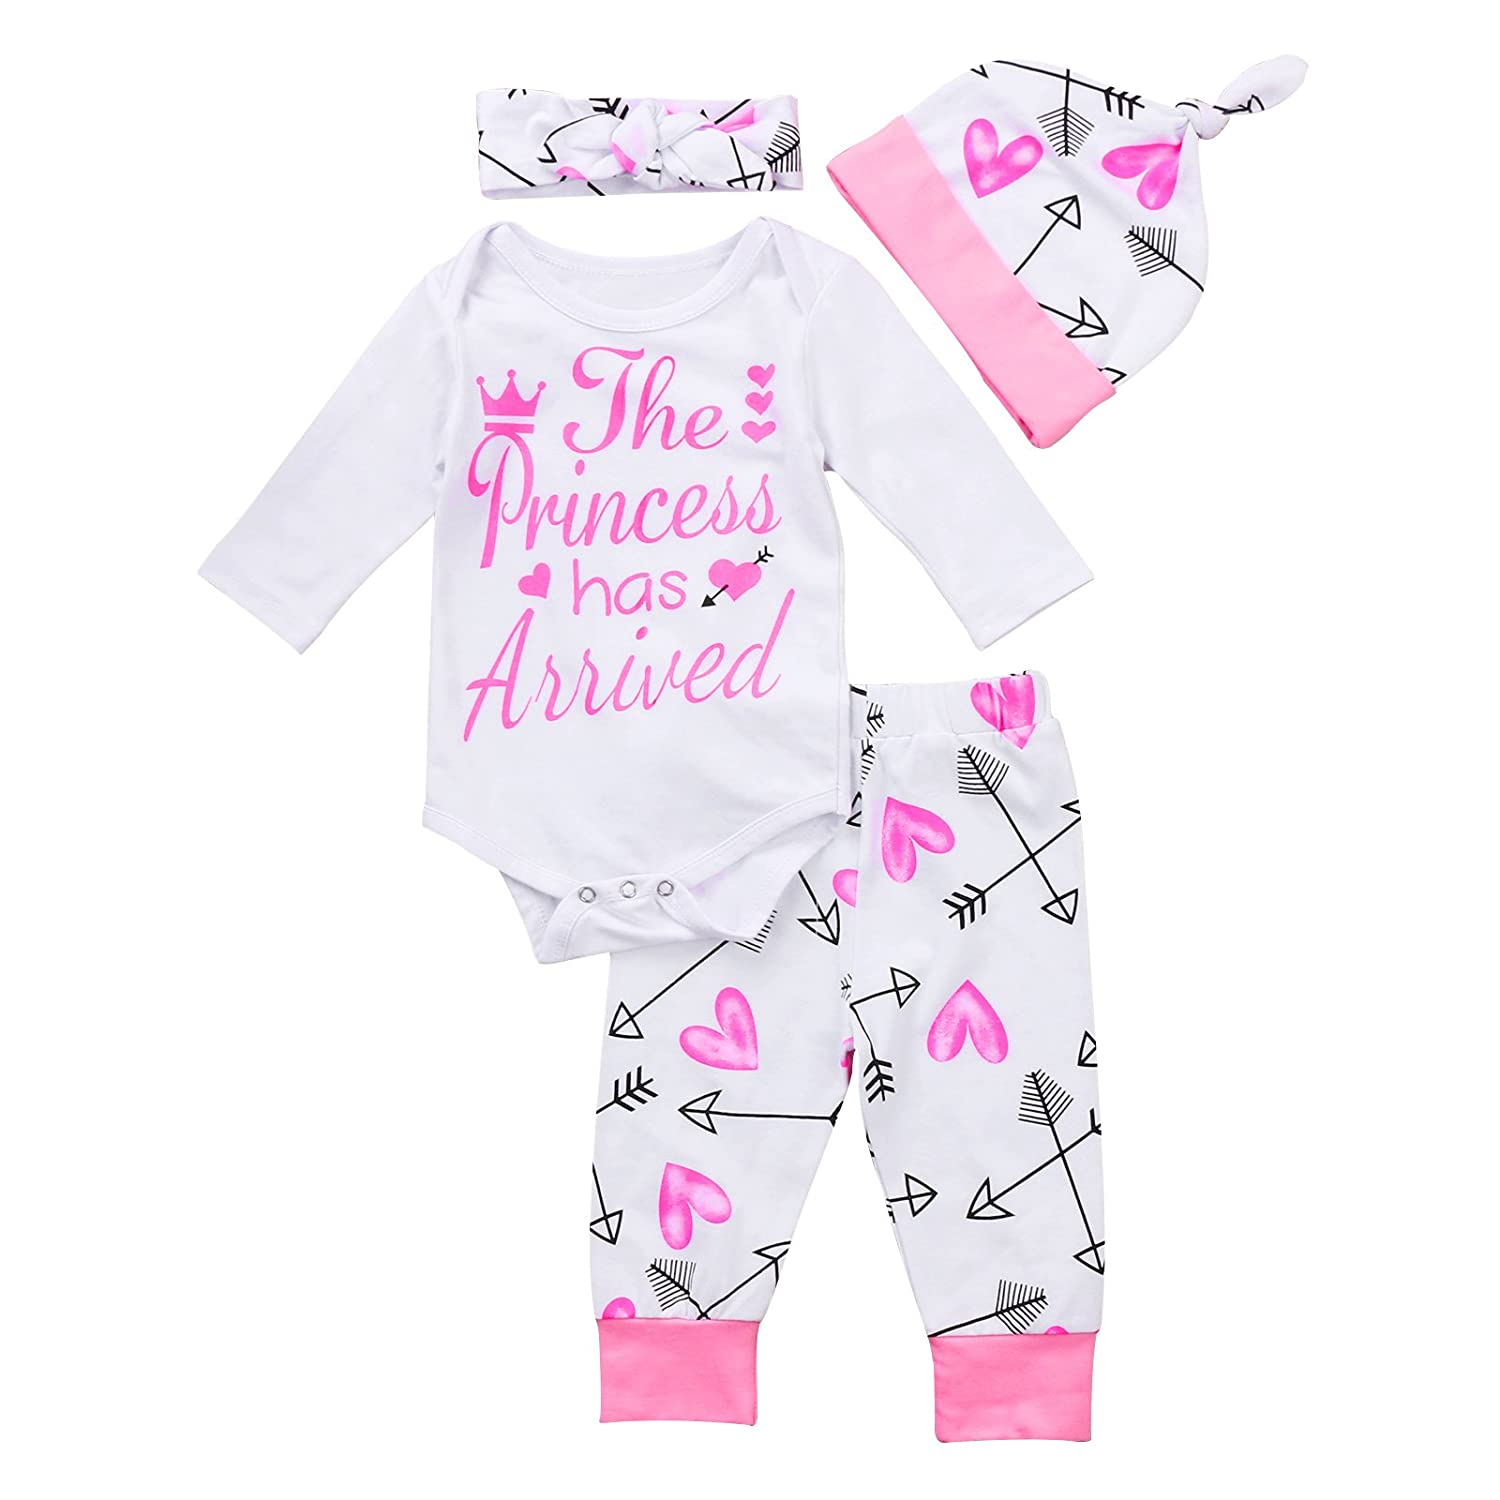 4 pcs Baby Girls Pants Set Newborn Infant Toddler Letter Romper Arrow Heart Pants Hats Headband Clothes